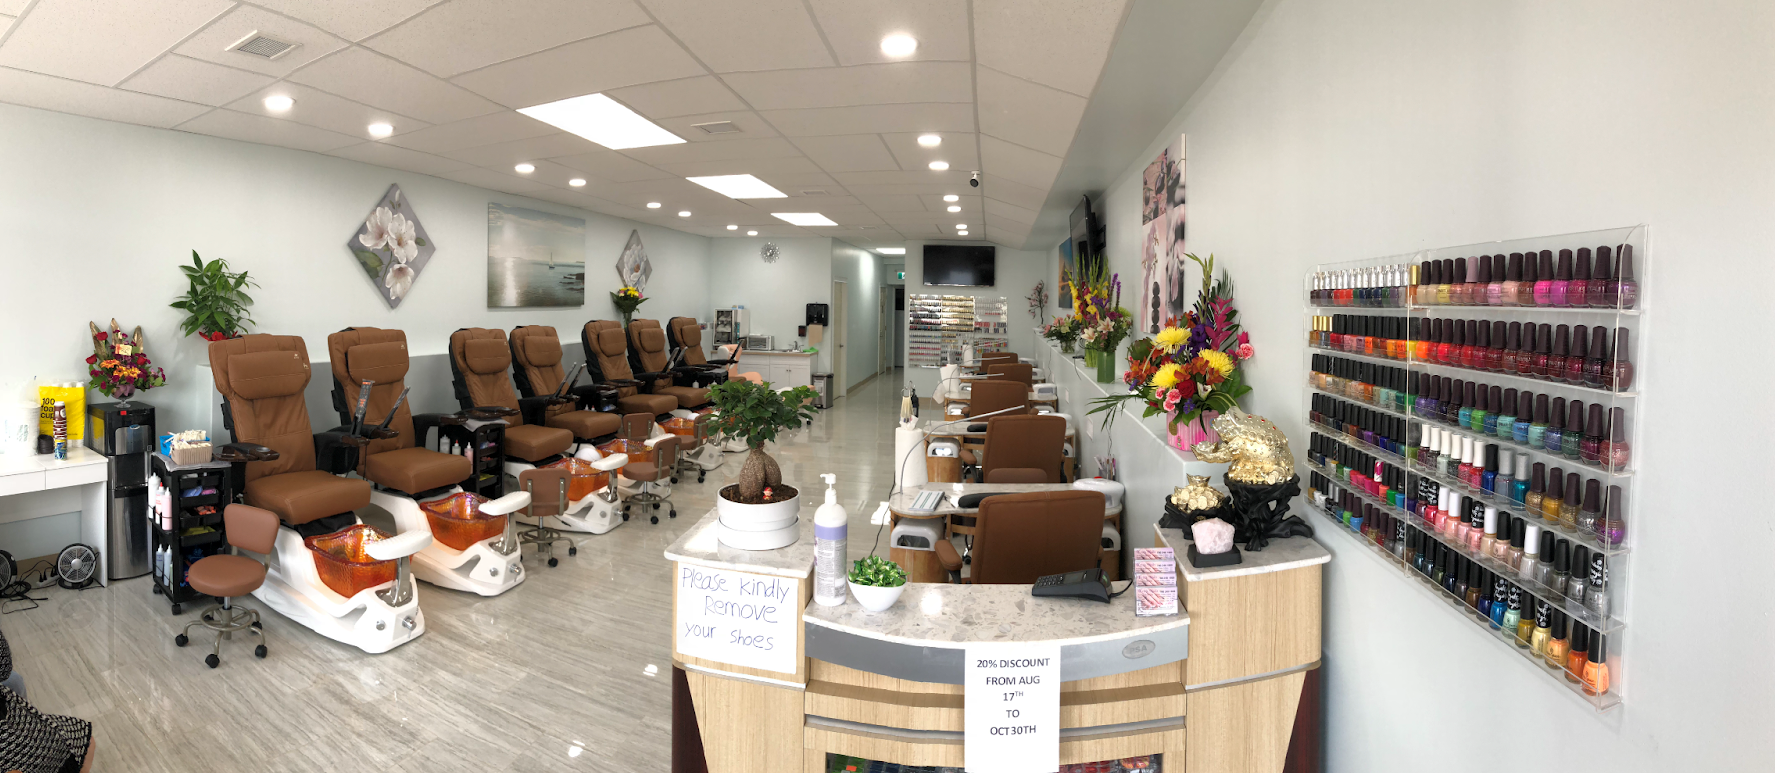 Kris's Nails - Nail Salon near me in Empire Park Edmonton AB T6H-0K8